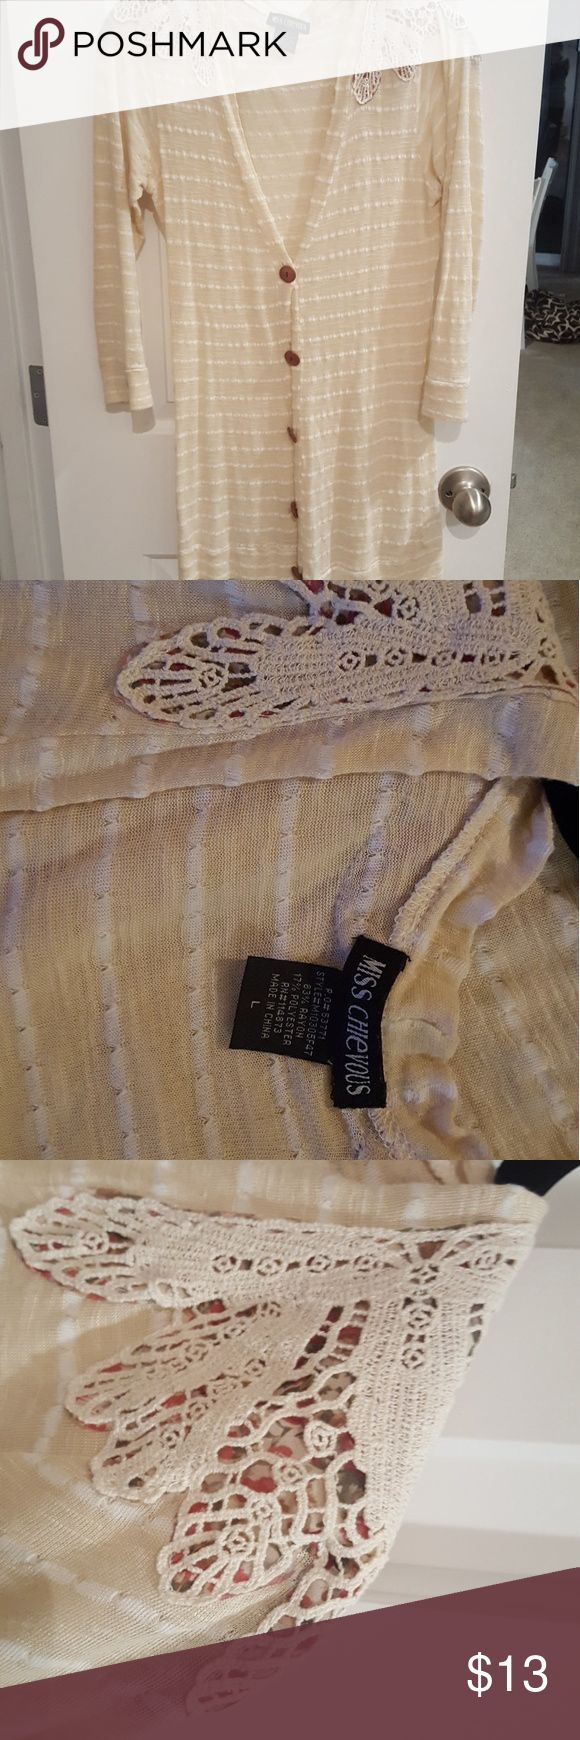 "Miss Chievous Cardigan Beige and White Striped cardigan with crochet detailing and flower pattern underneath.  Barely worn, no flaws, smoke and pet free home.  I'm 5'8"" 120 pounds and this is a perfect fit for something a little looser. Miss Chievous Sweaters Cardigans"